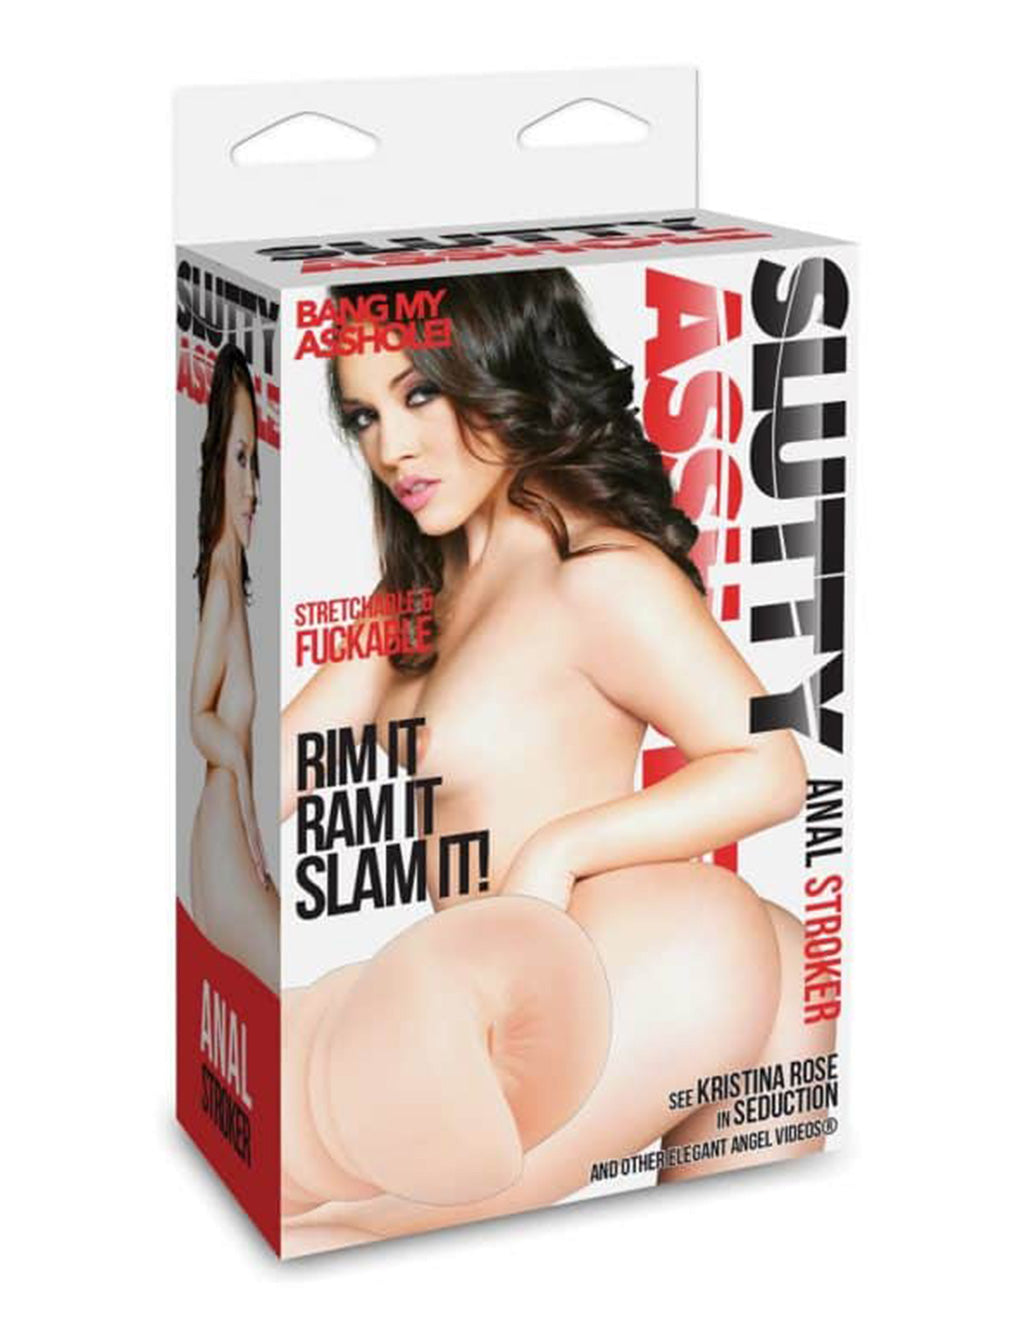 Slutty Asshole Anal Stroker packaging